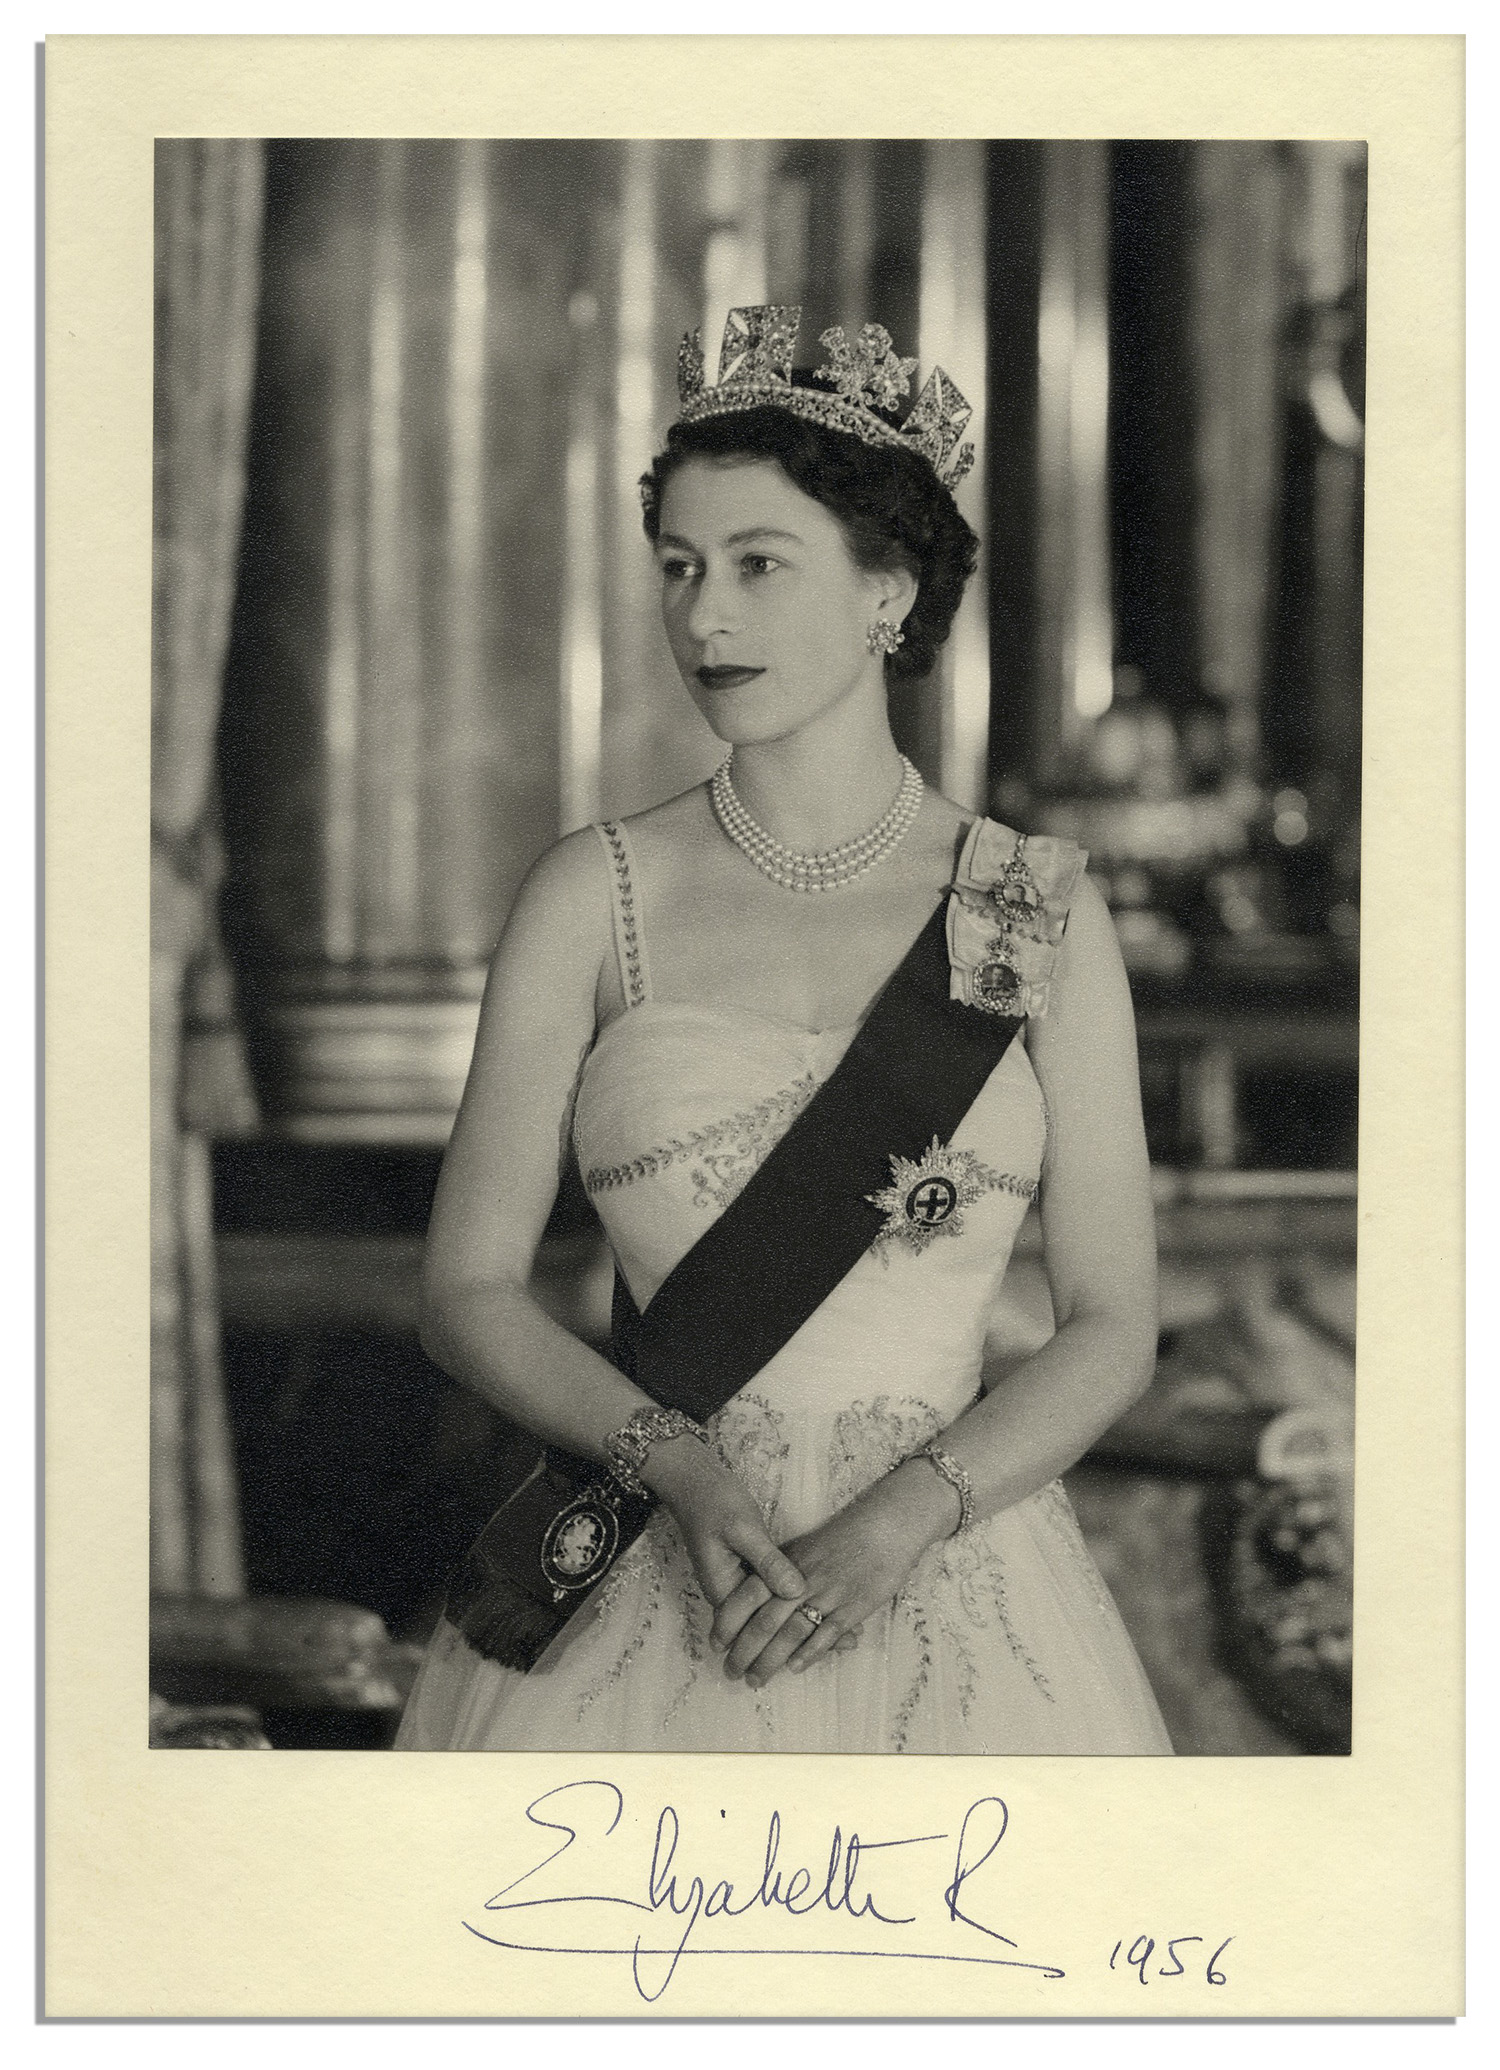 Lot 21 - Stunning Signed Photo of Queen Elizabeth II -- Photograph by Cecil Beaton Queen Elizabeth II photo